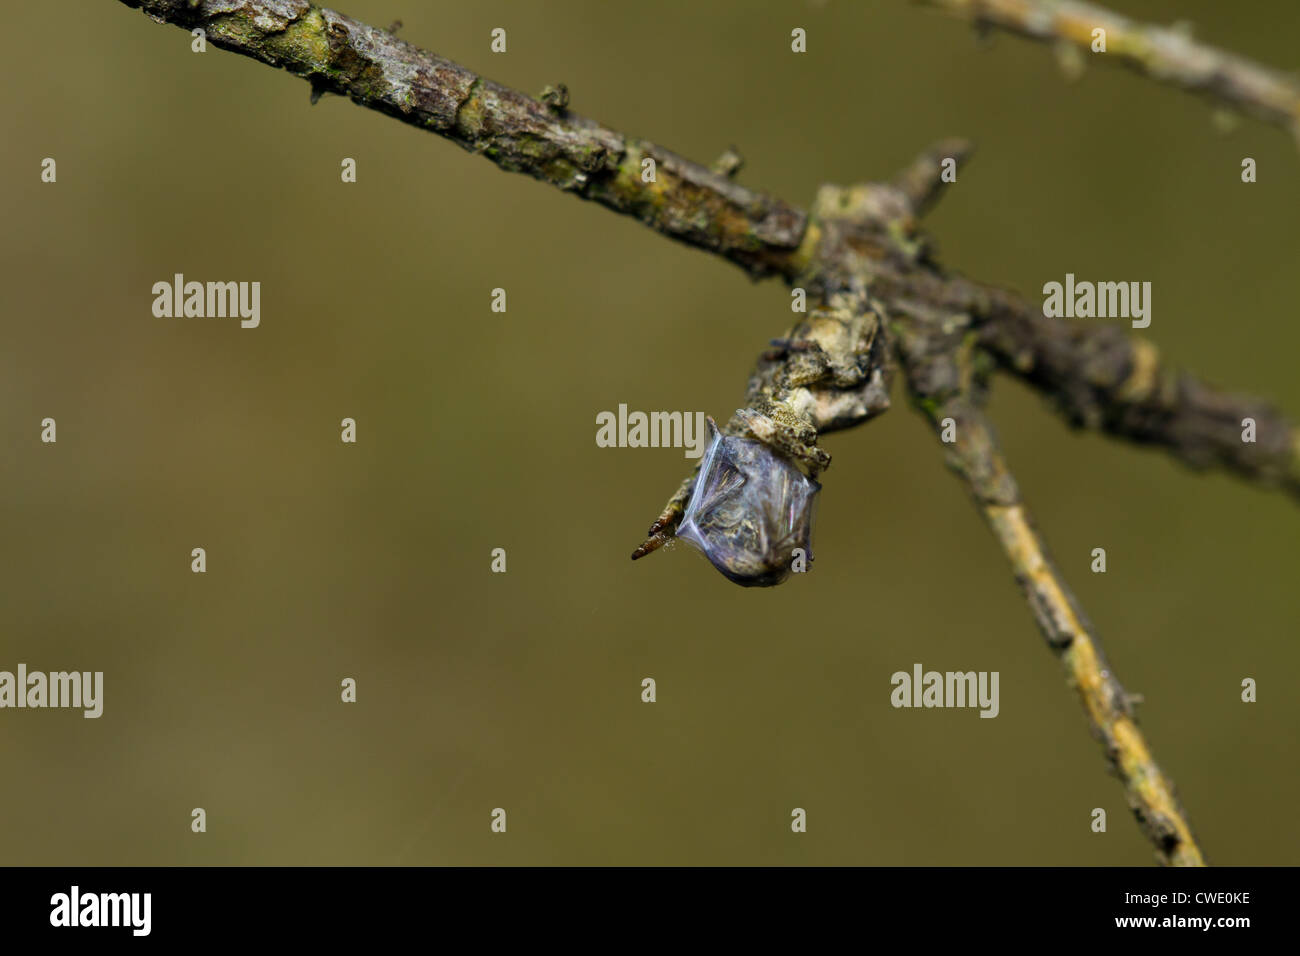 Hyptiotes paradoxus - the Triangle spider with its wrapped-up prey. One of few non-venomous European spiders. - Stock Image